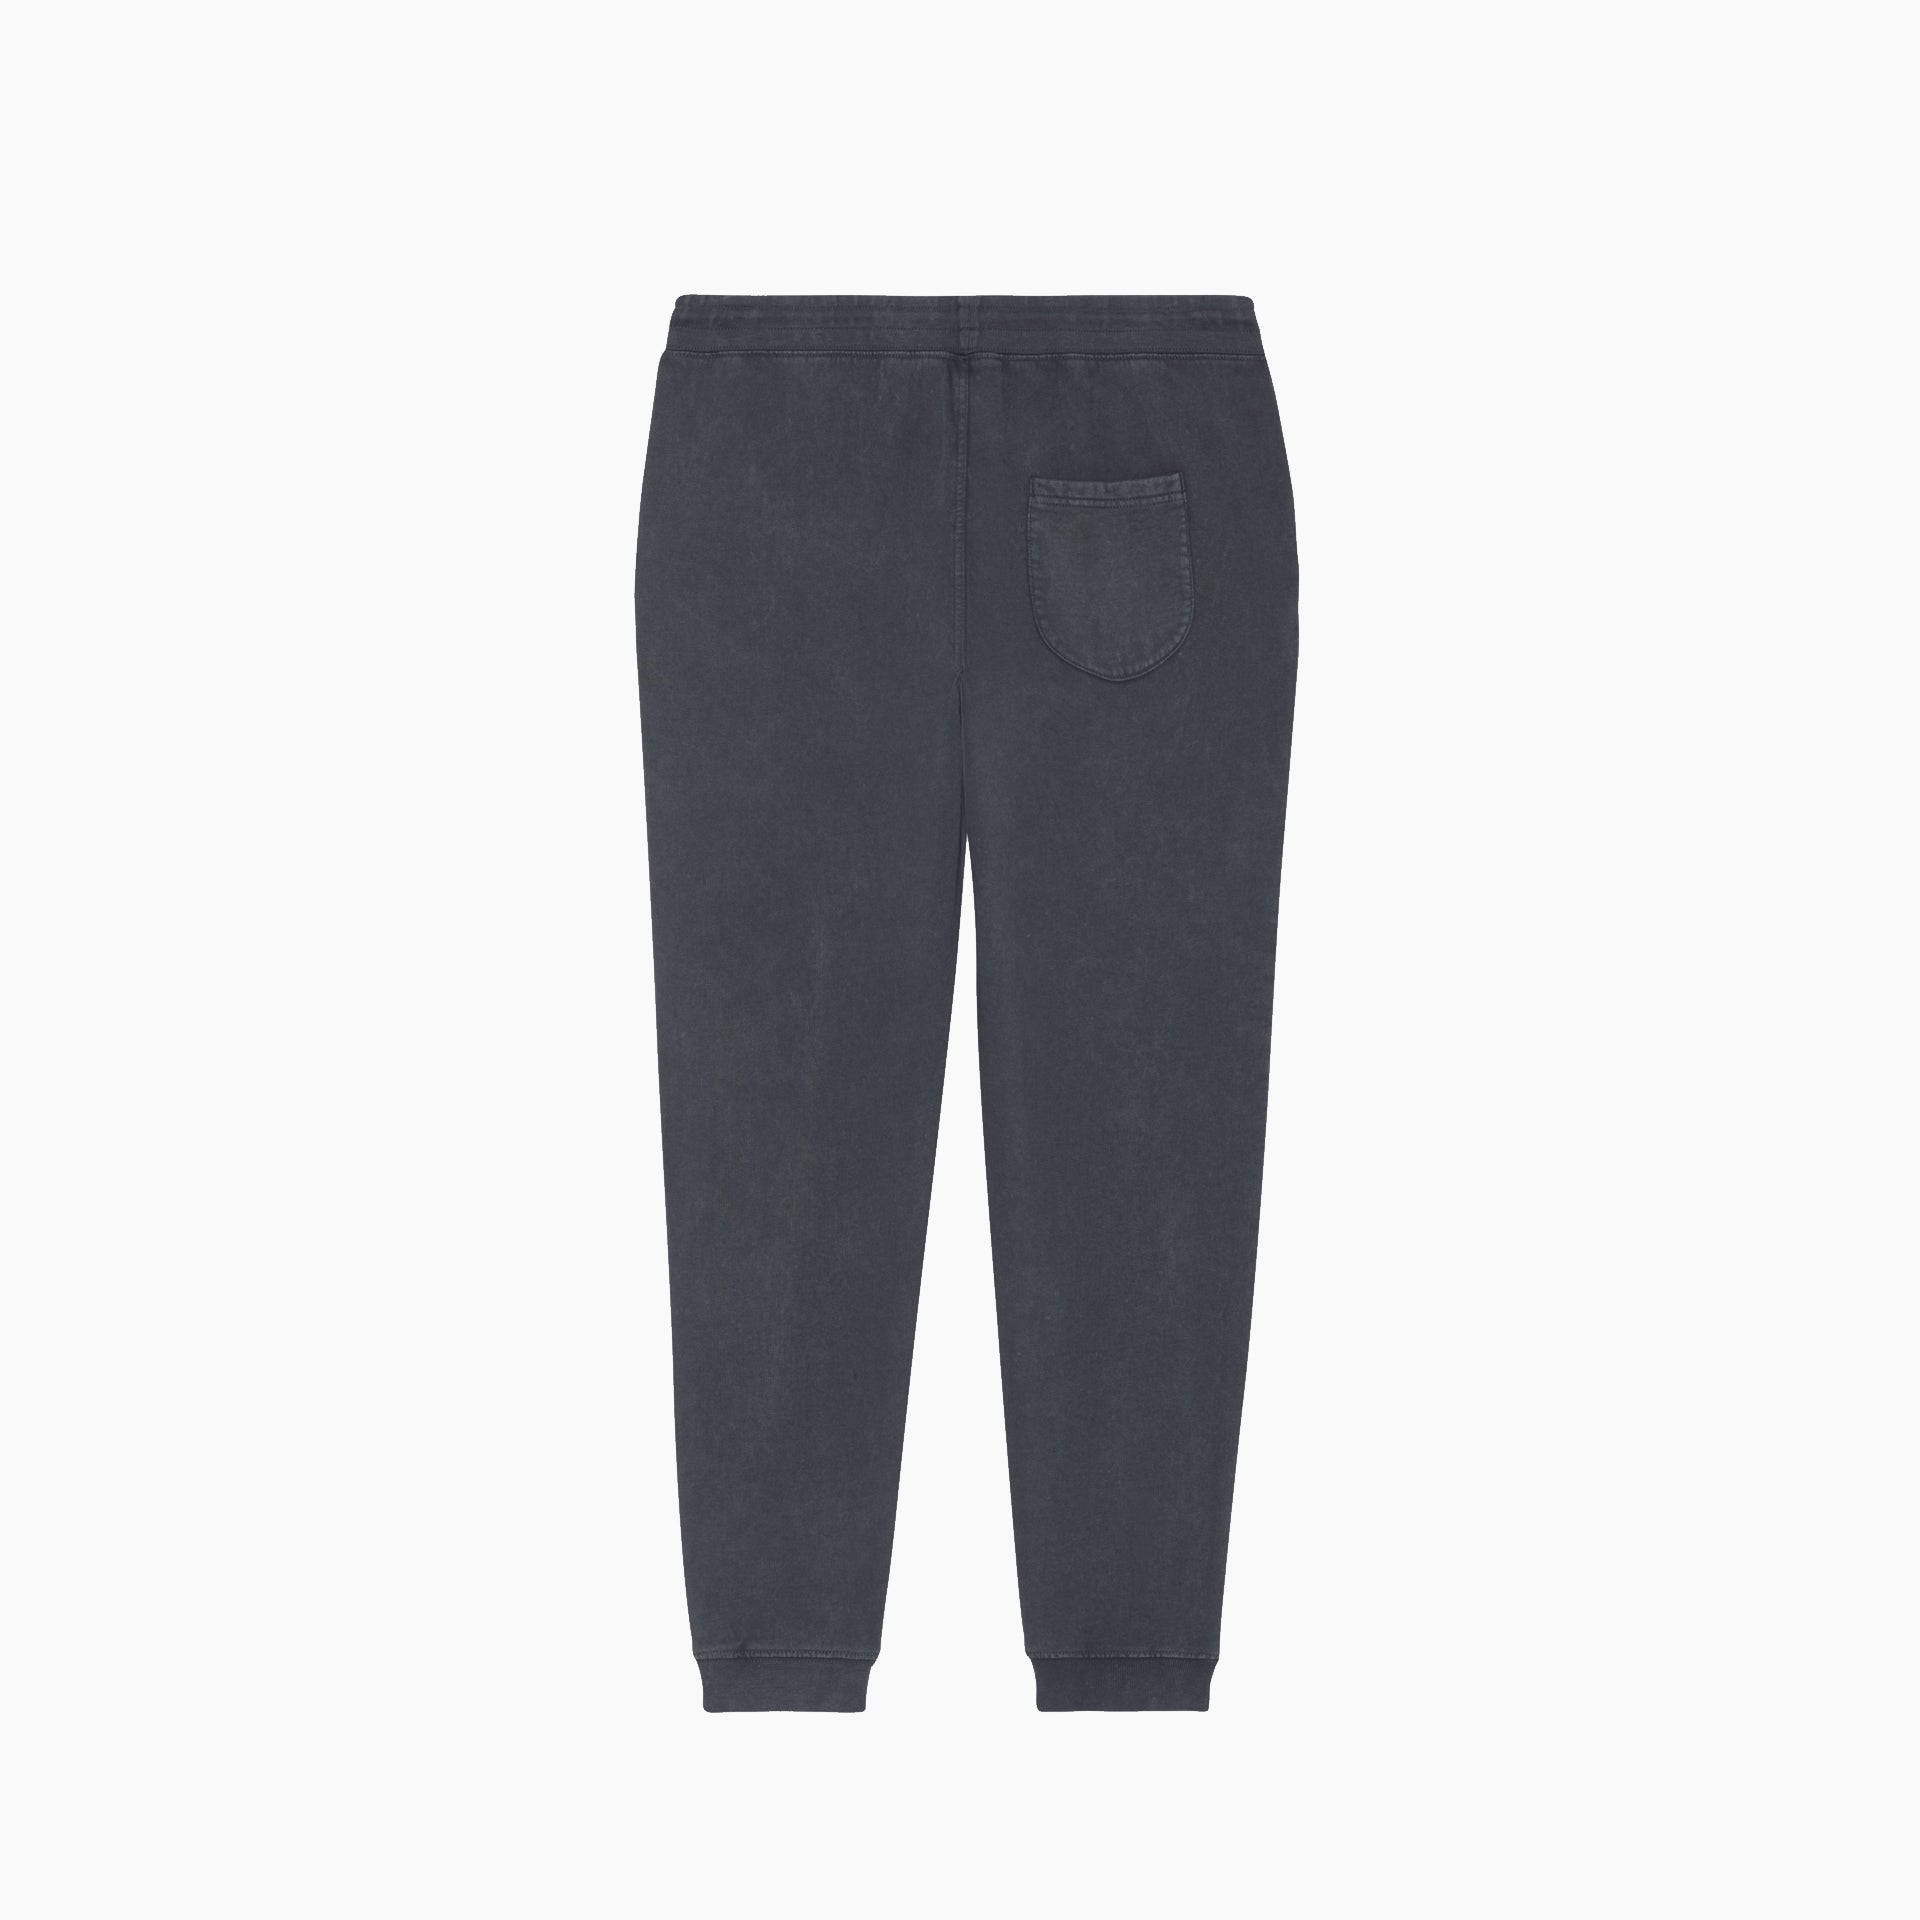 Sweat pant MARCELO - Black washed